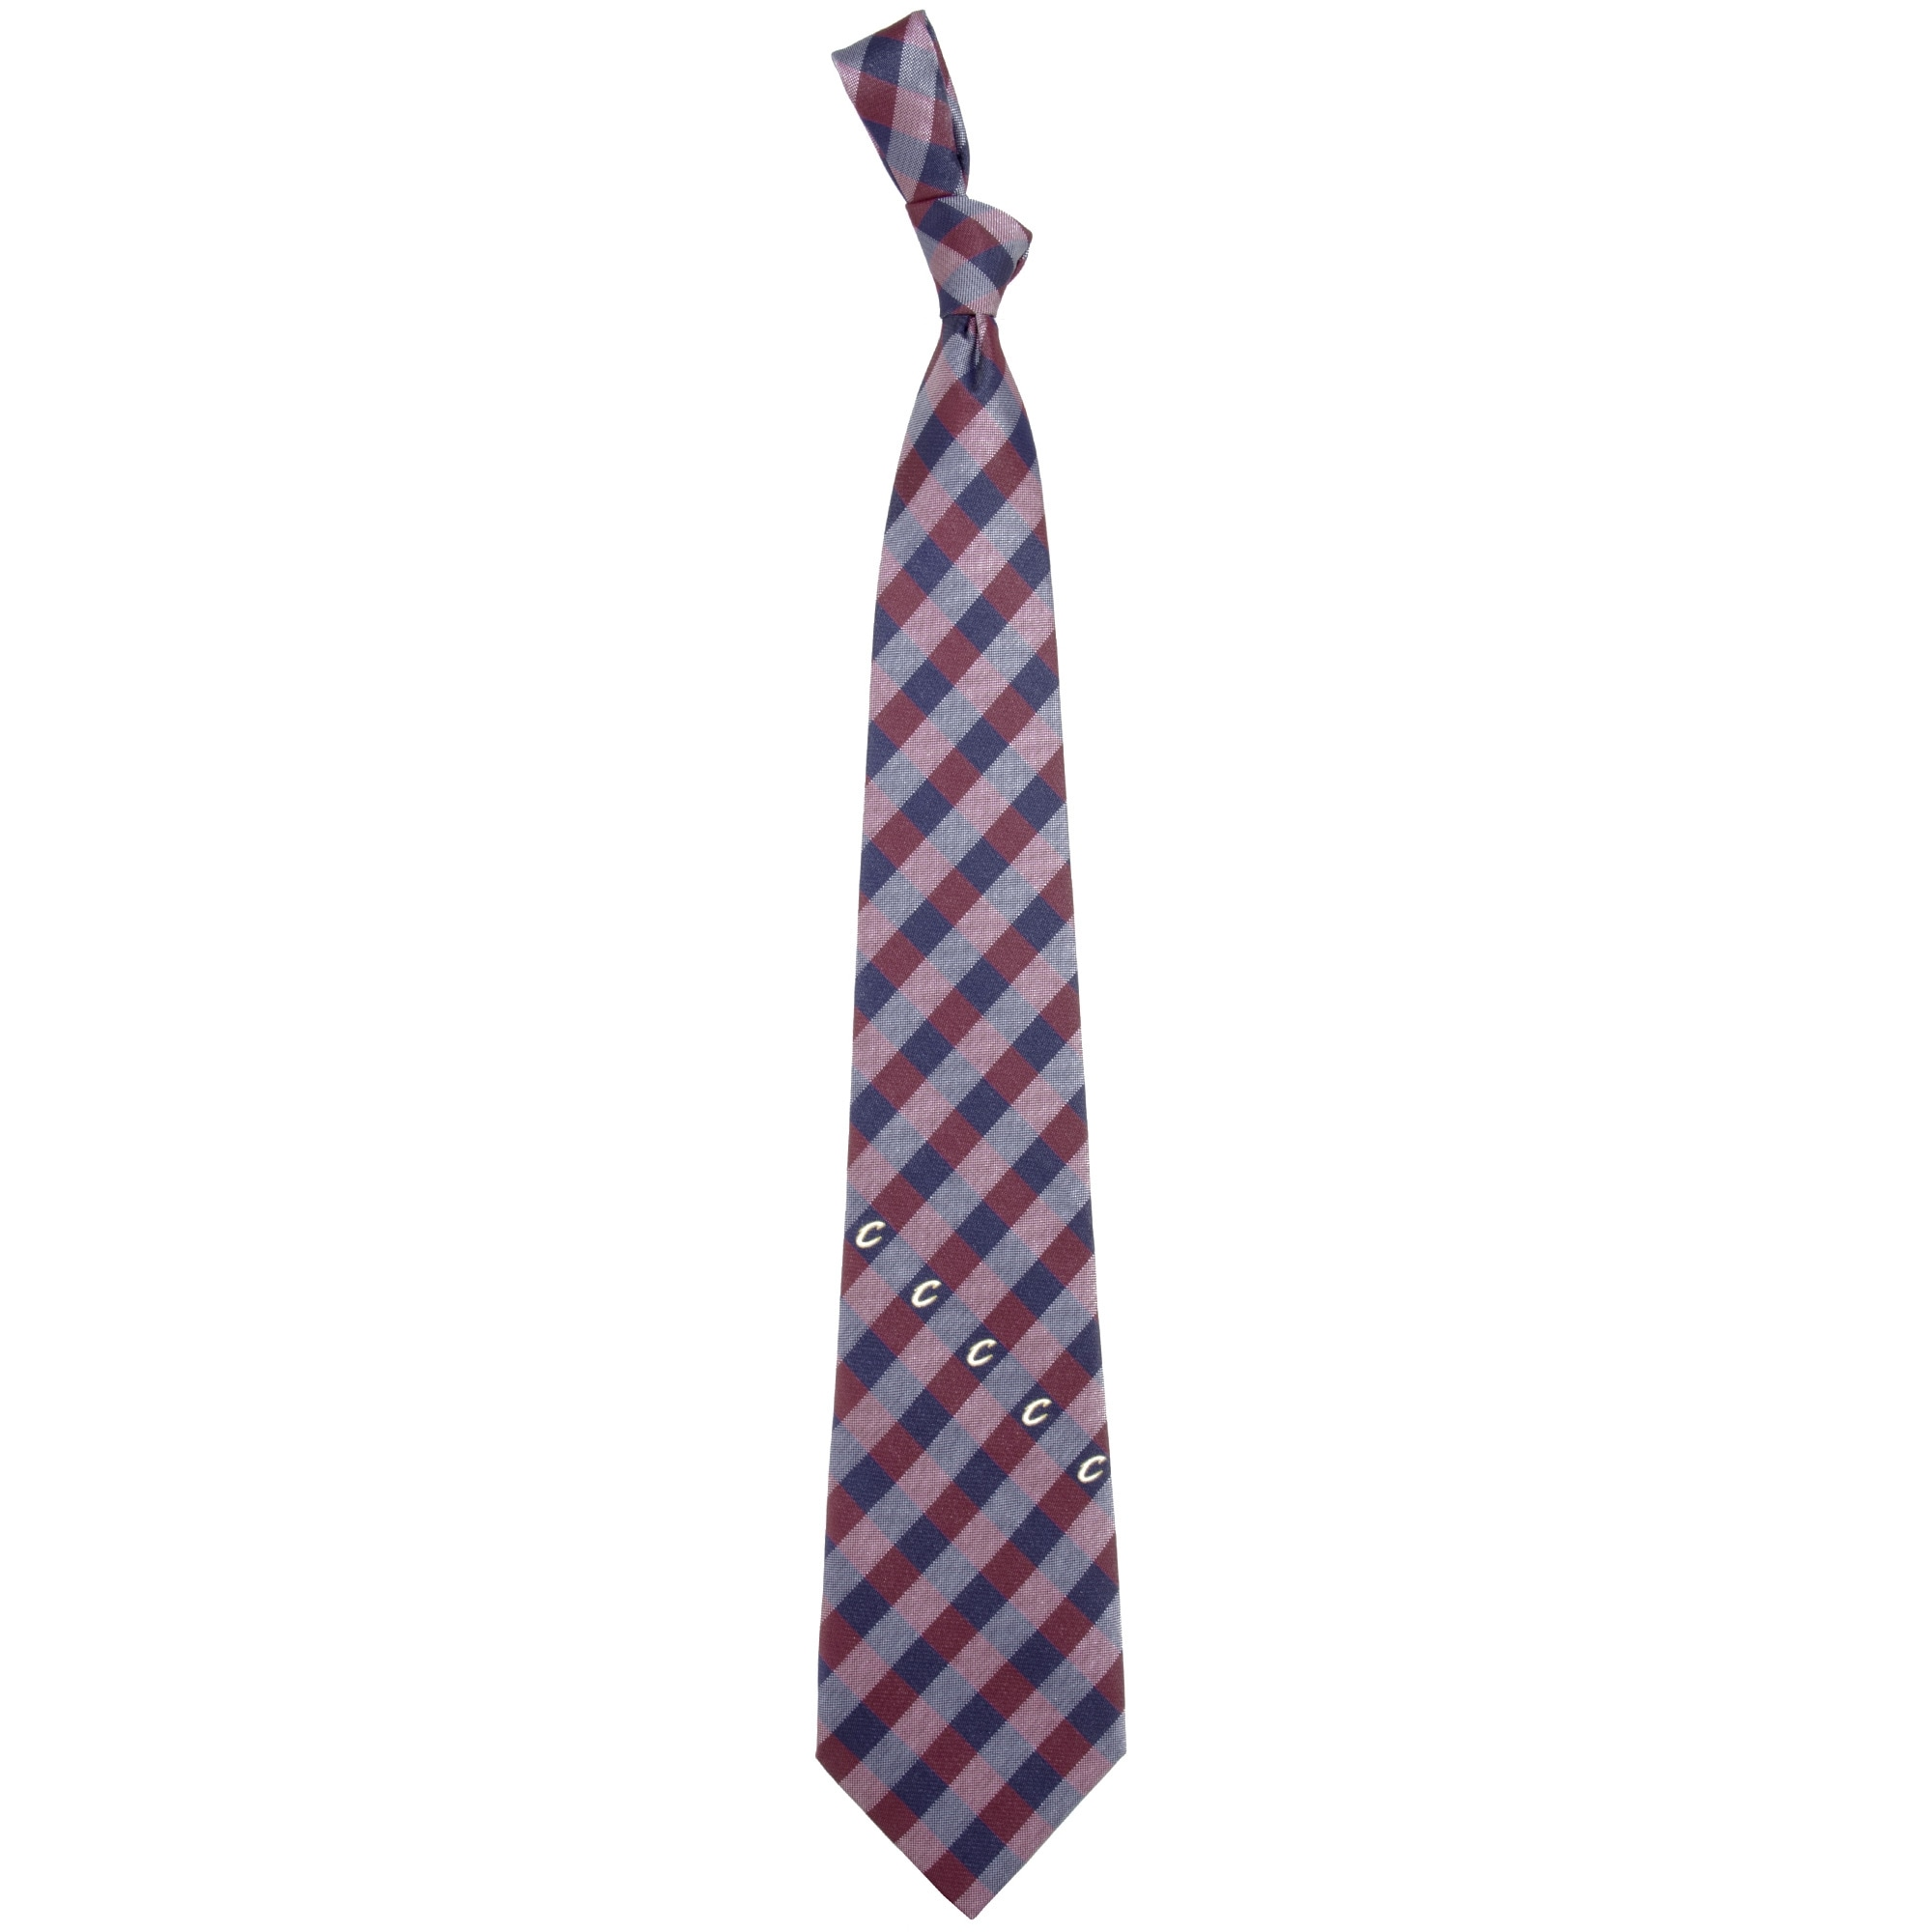 Cleveland Cavaliers Woven Checkered Tie - Wine/Navy Blue